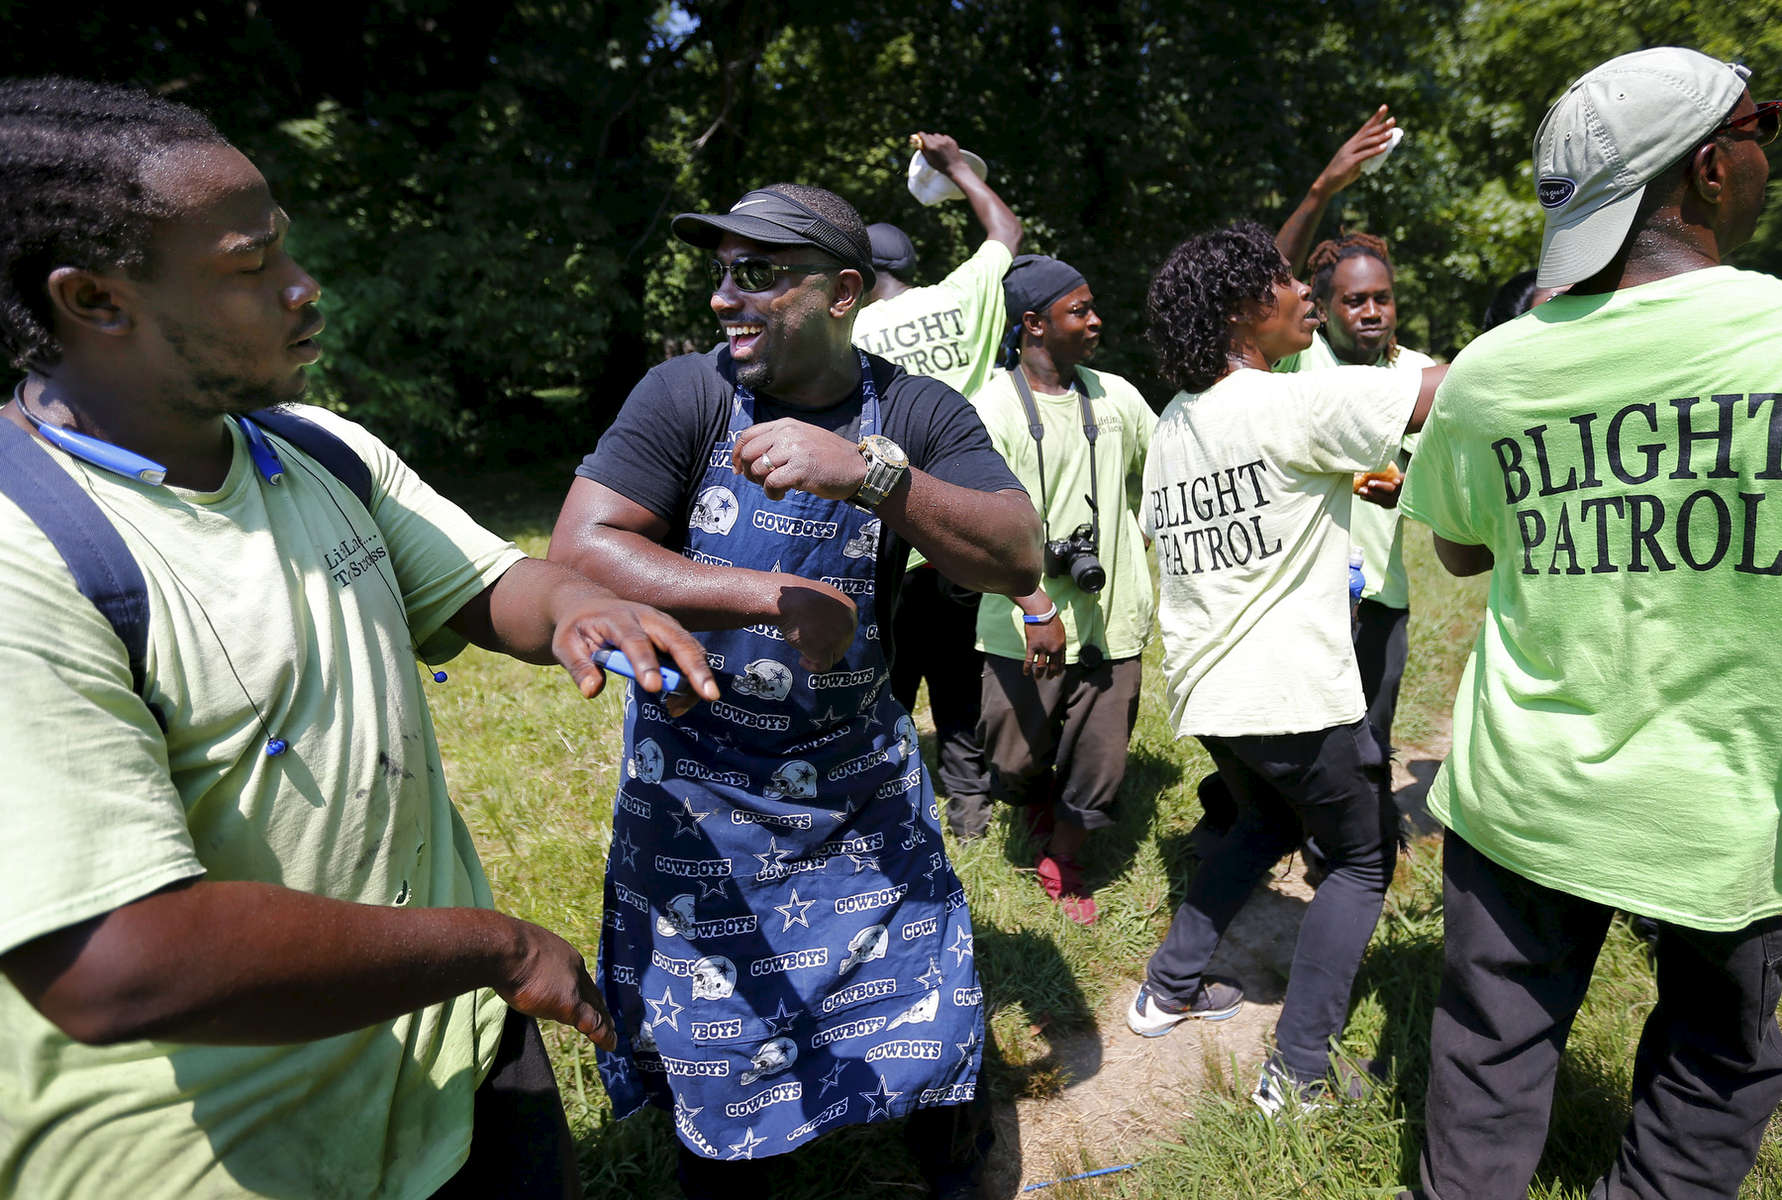 July 18, 2016 - DeAndre Brown (second from left) takes a break from the grill and dances with members of the LifeLine 2 Success Blight Control during a rally against violence down the street from where a 19-year-old was murdered Saturday night. Brown cooked burgers and hot dogs for area residents, held a prayer with police officers to spread the message that violence is not acceptable. (Mike Brown/The Commercial Appeal)